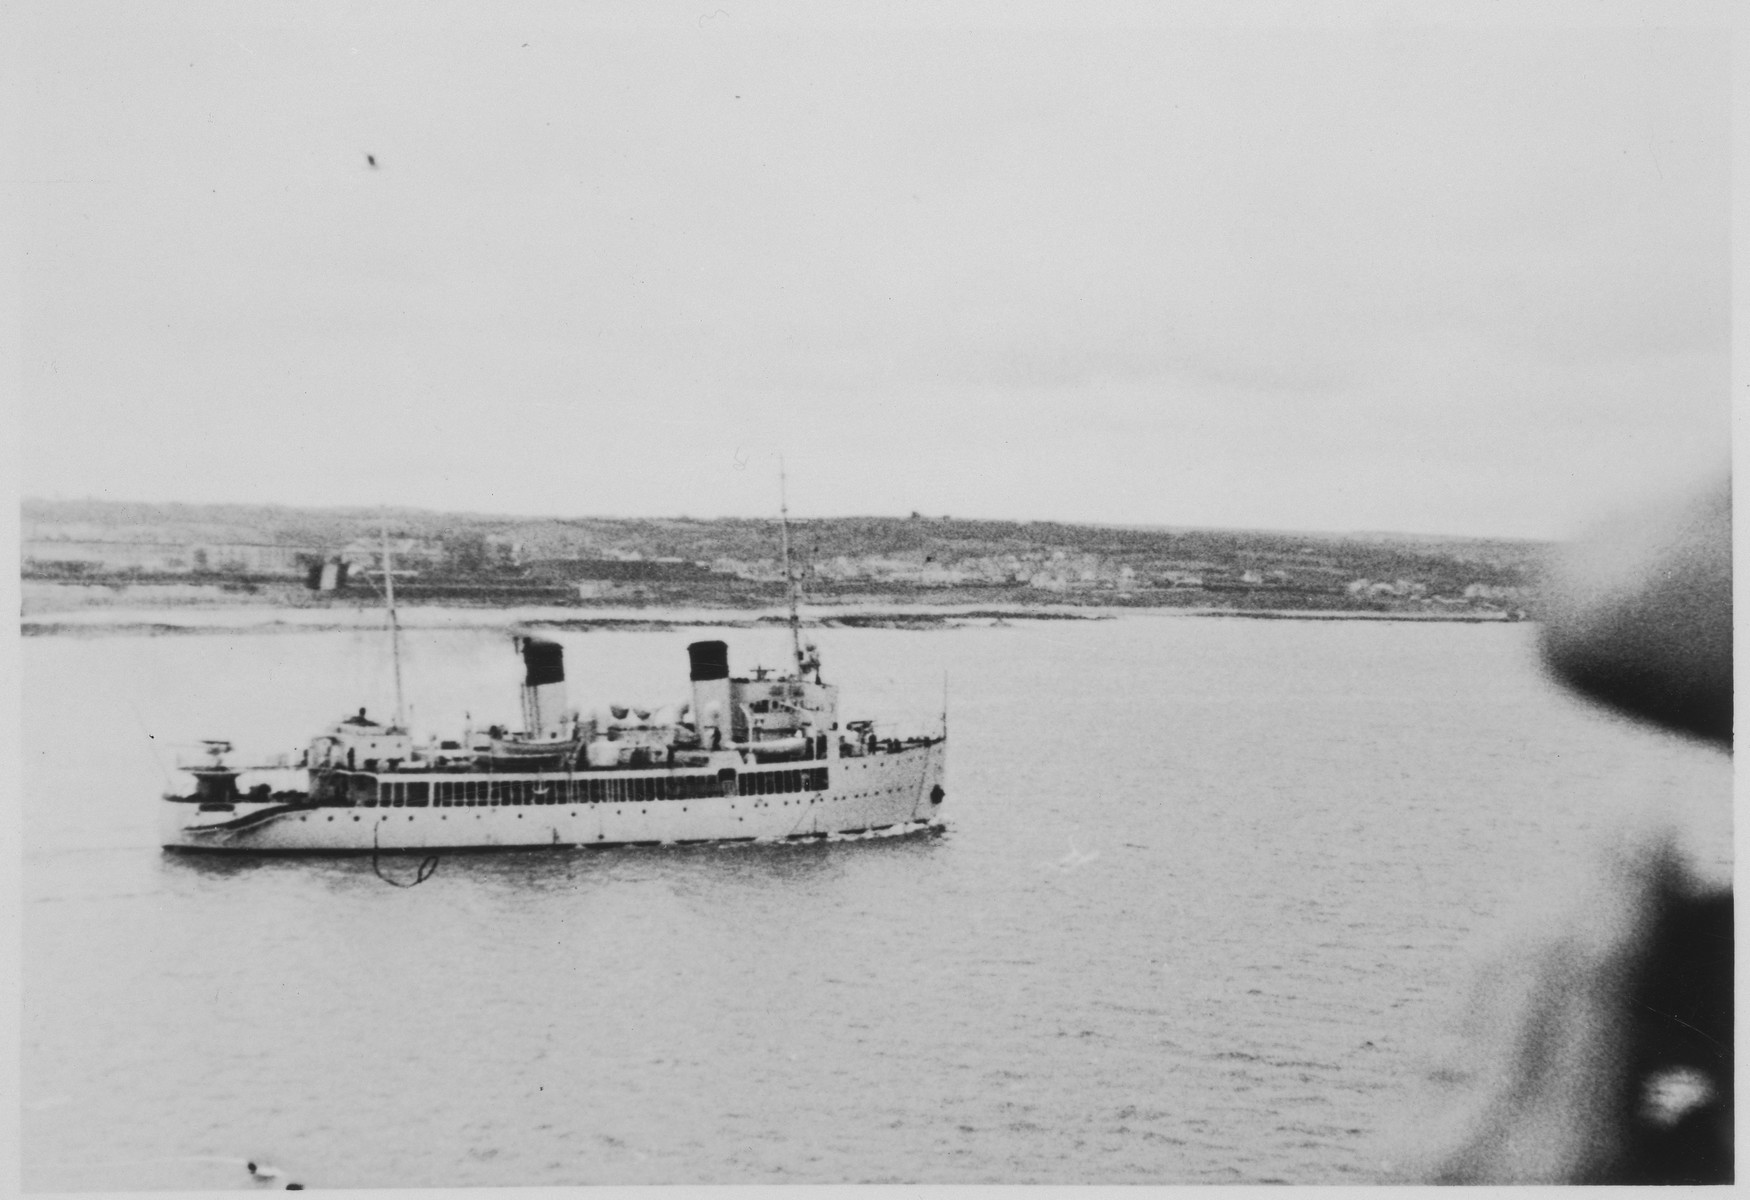 View of a passenger ferry in Havana harbor from the deck of the MS St. Louis.